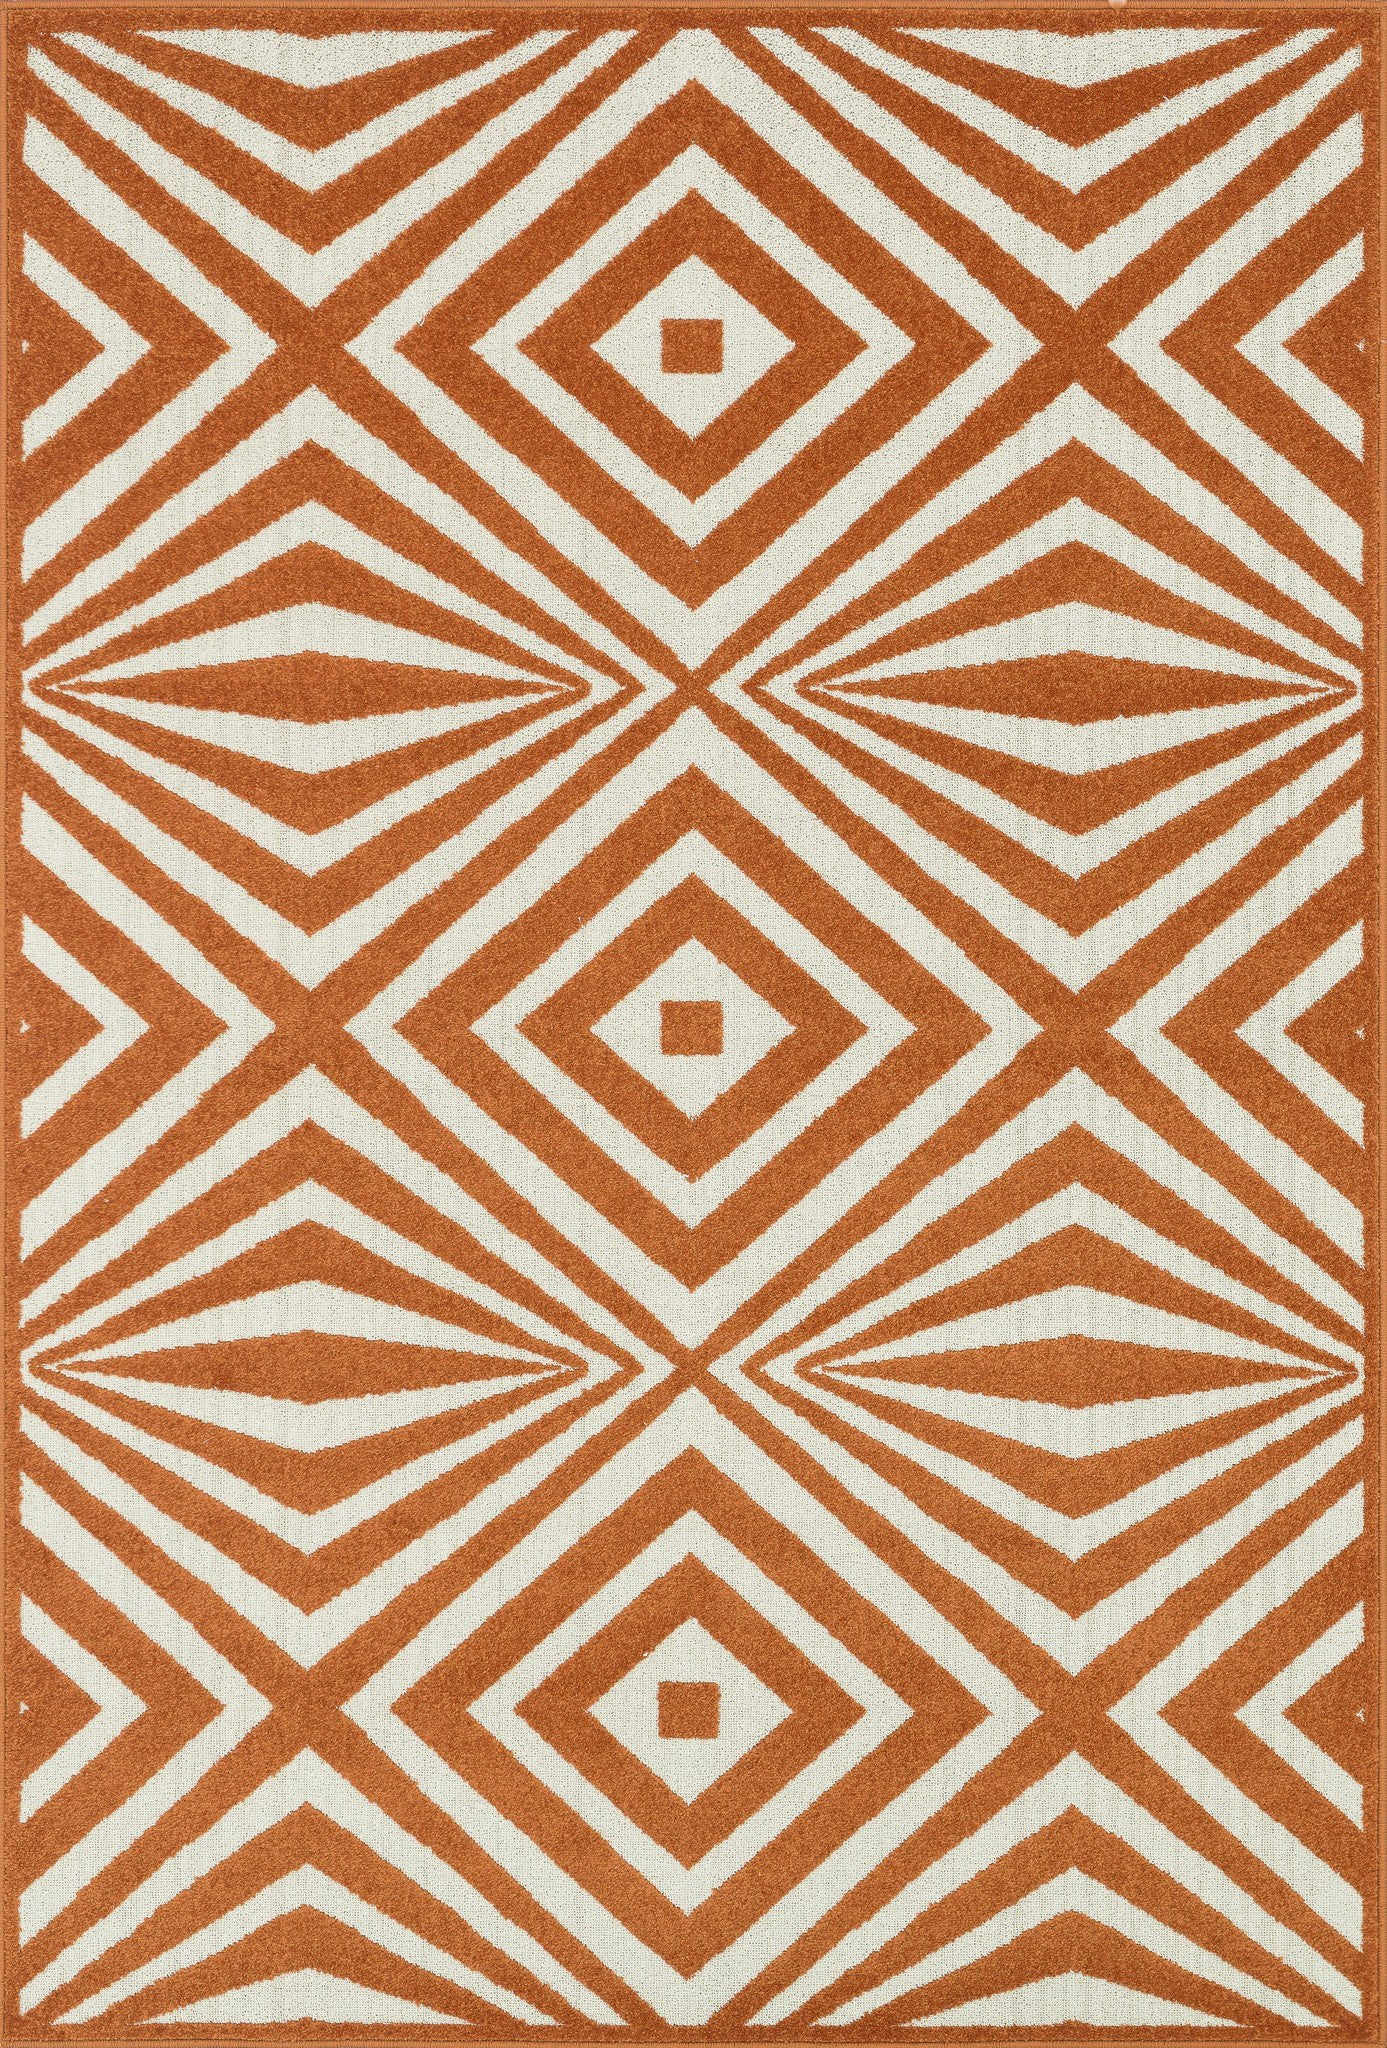 Loloi Catalina HCF04 Orange / Ivory Area Rug main image